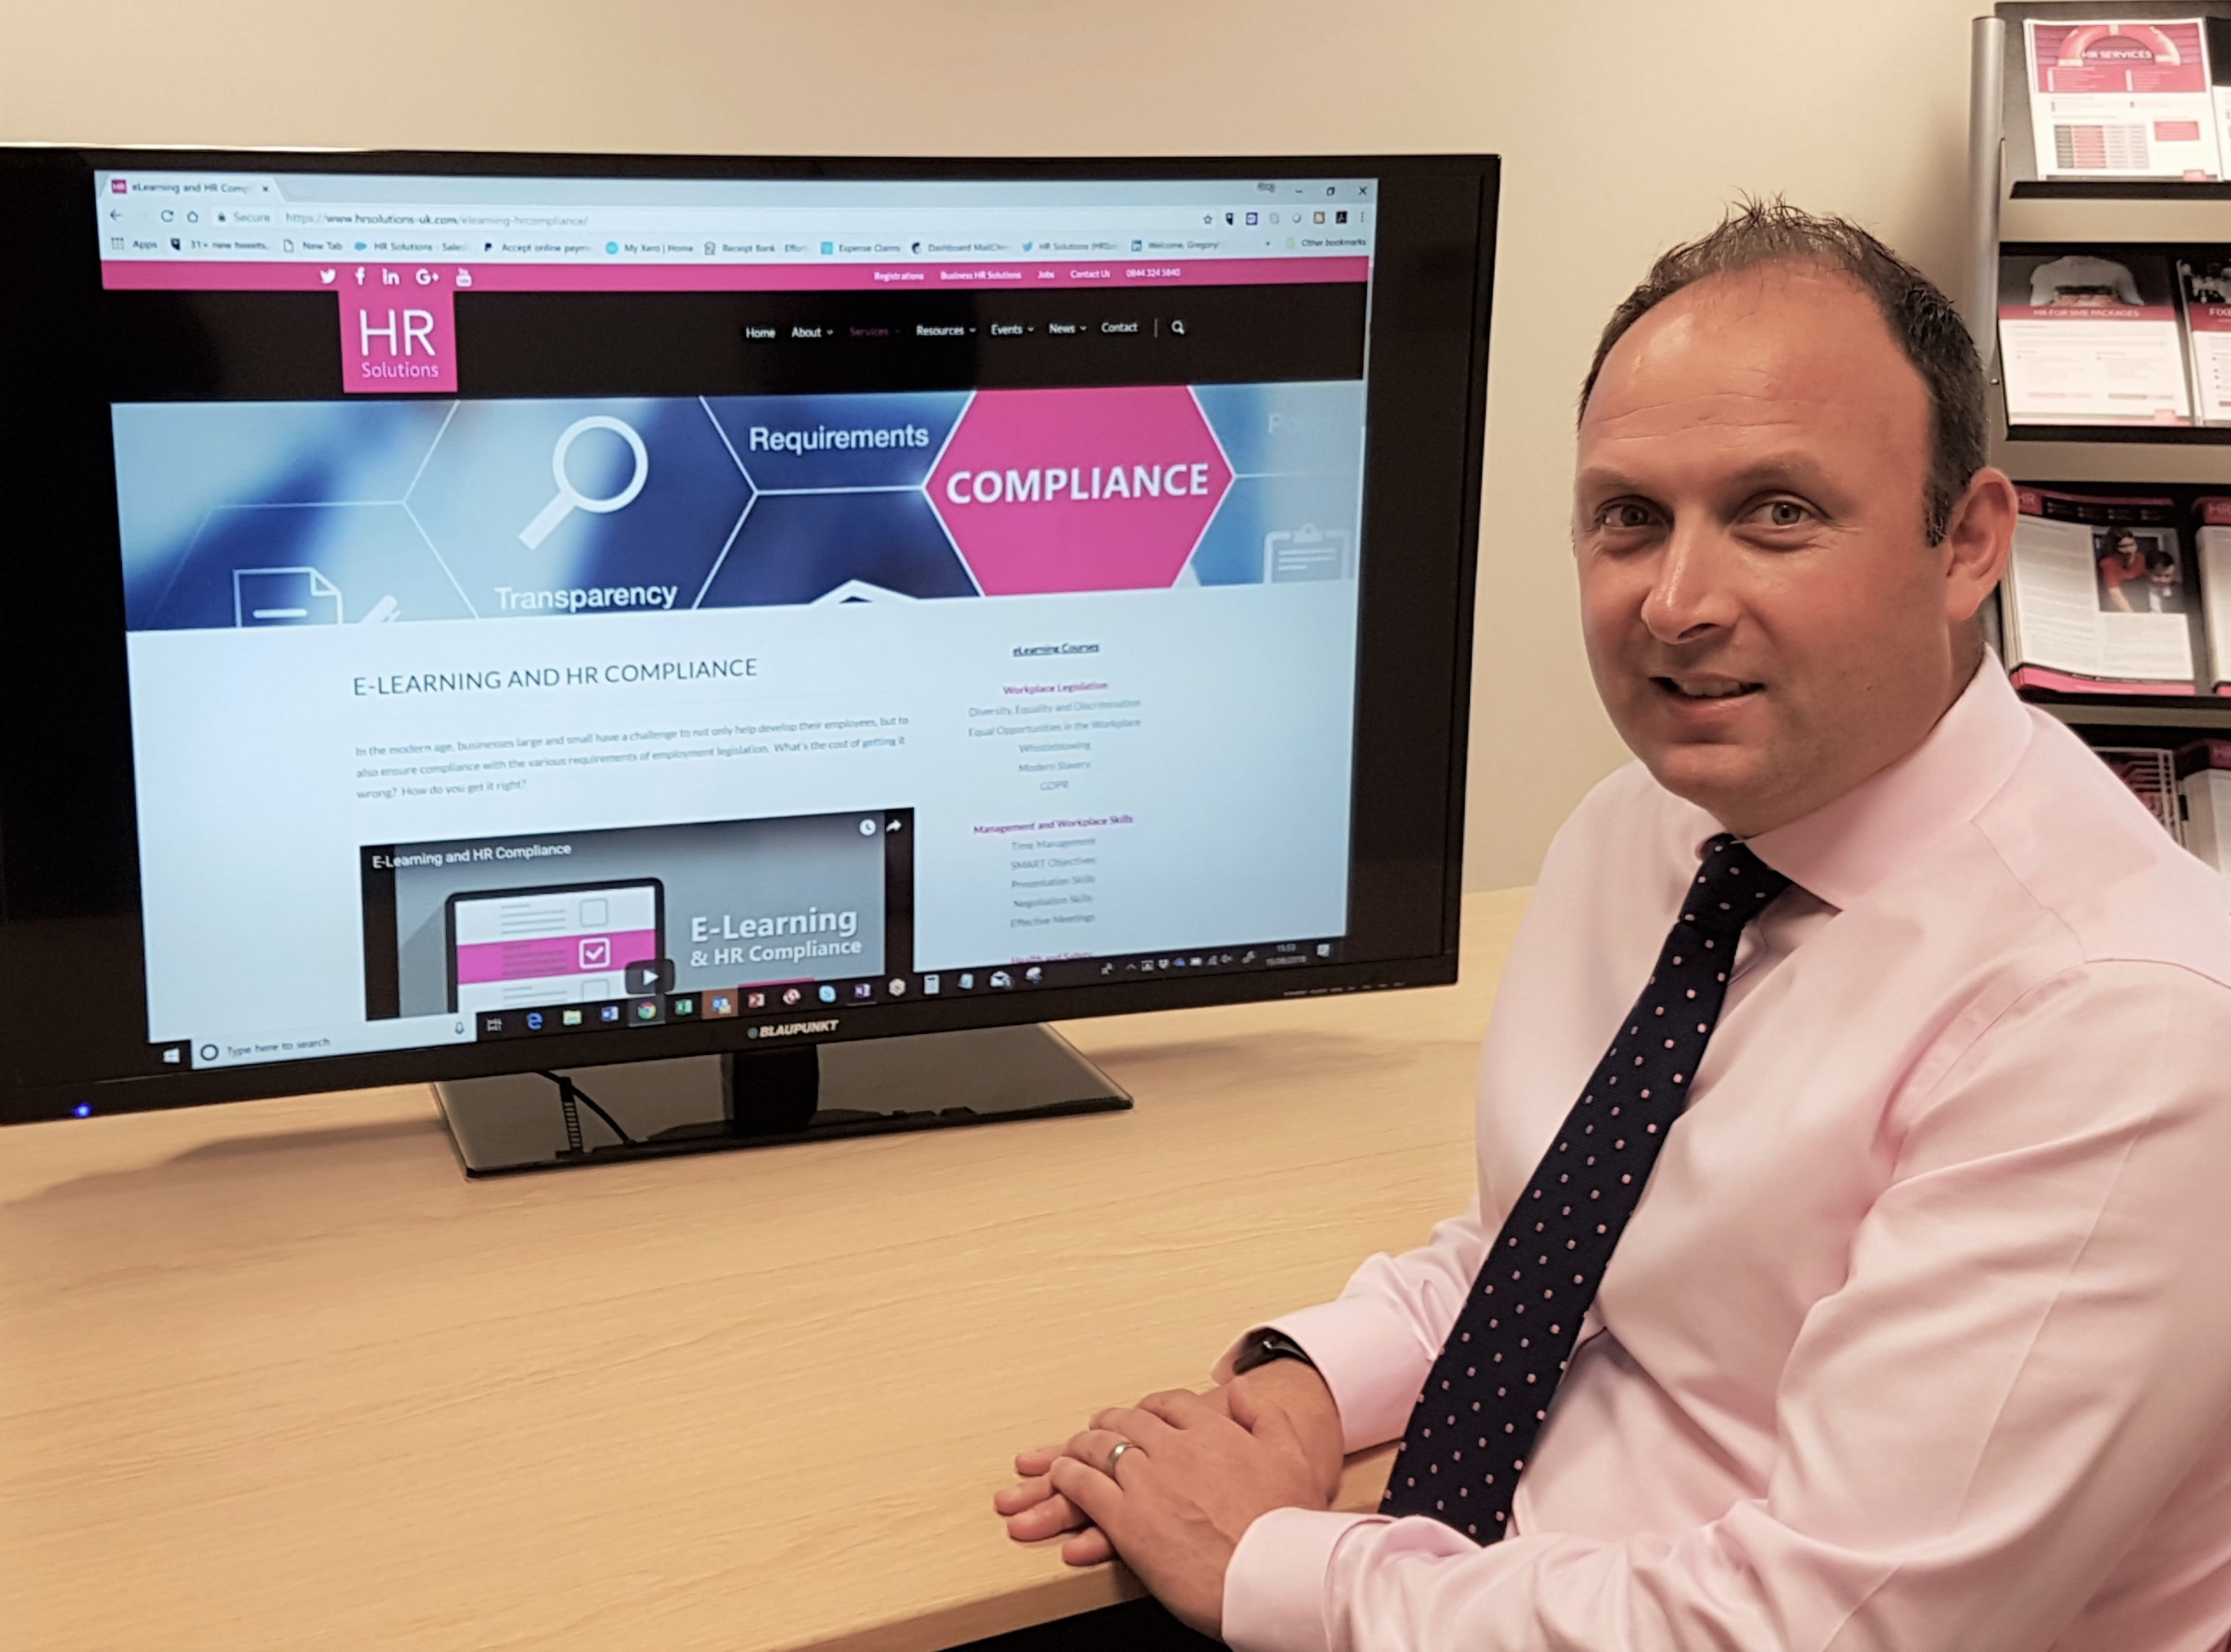 HR experts launch e-learning system to help businesses comply with employment legislation